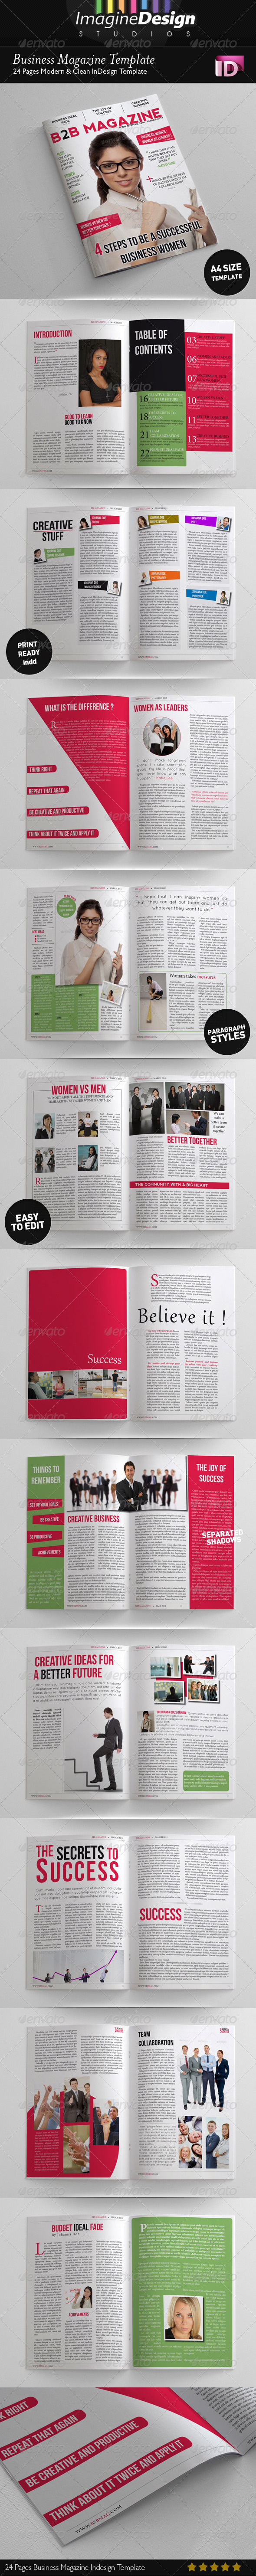 24 Pages Business Magazine Template - Magazines Print Templates